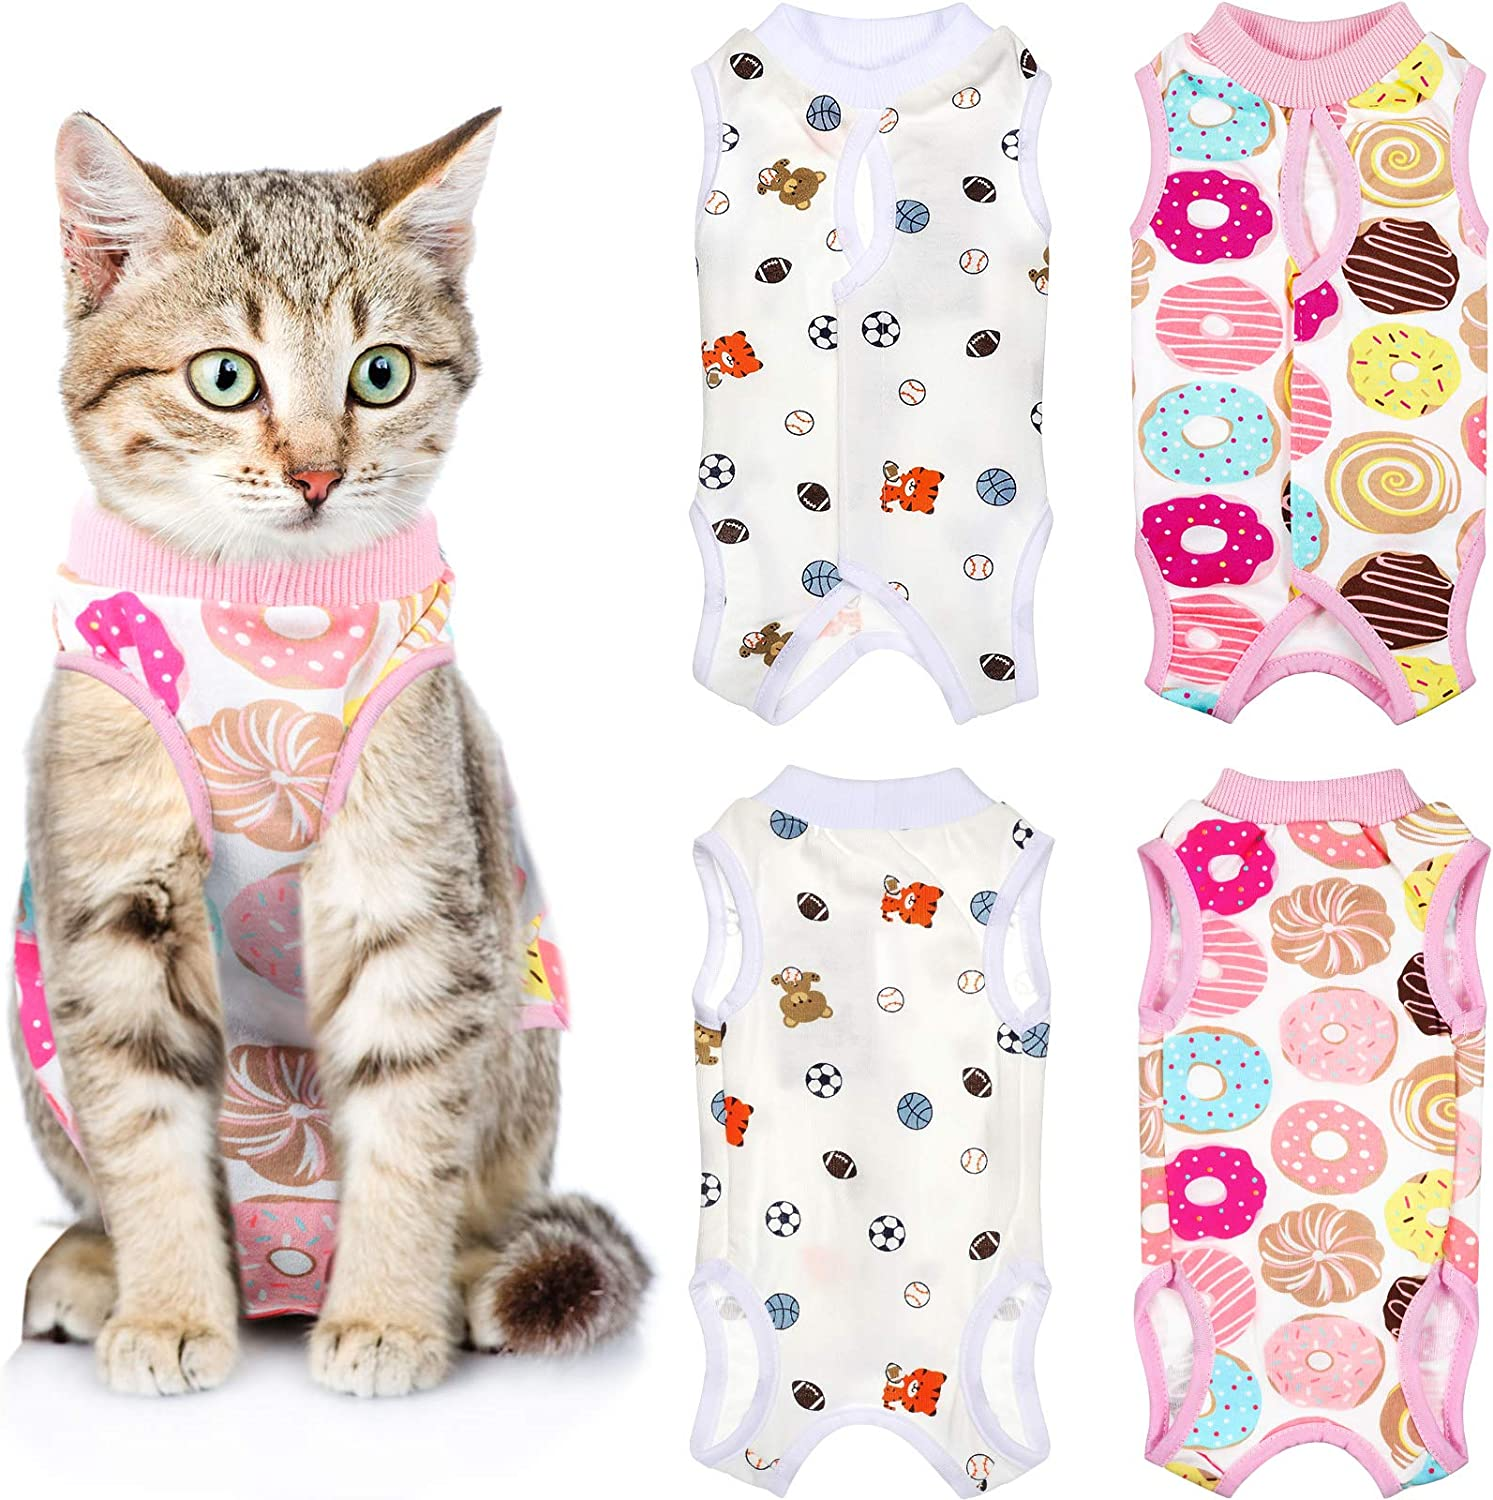 Weewooday 2 Pieces Kitten Cat Recovery Suit Soft Breathable Kitten Recovery Shirt Prevent Licking Skin Abdomen Recovery Collar Alternative for Cats Dogs Kitten